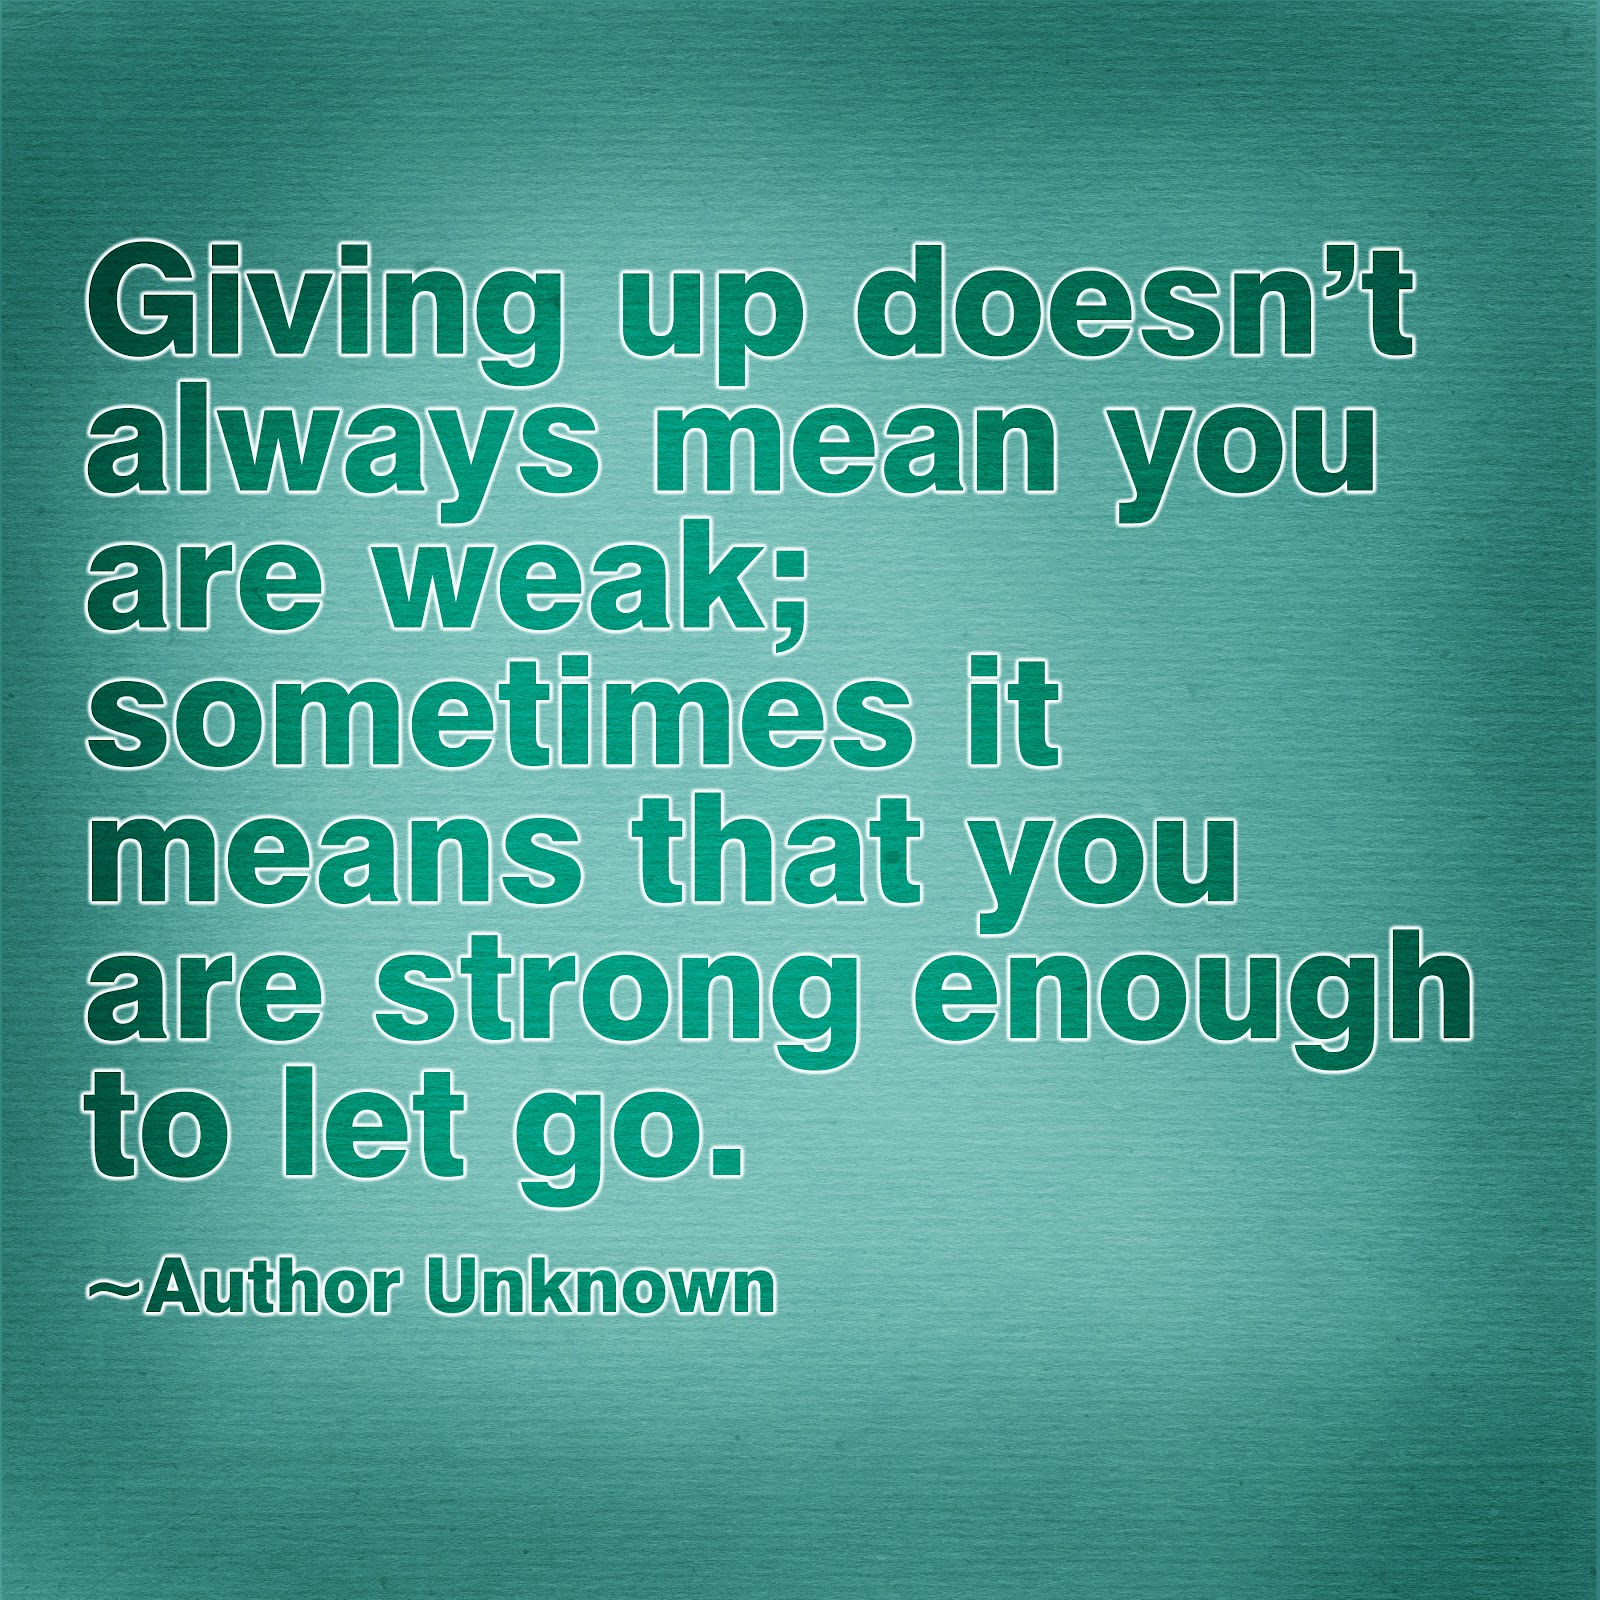 Giving Up Doesn't Always Meak, Sometimes It Means That You Are Strong Enough To Let Go